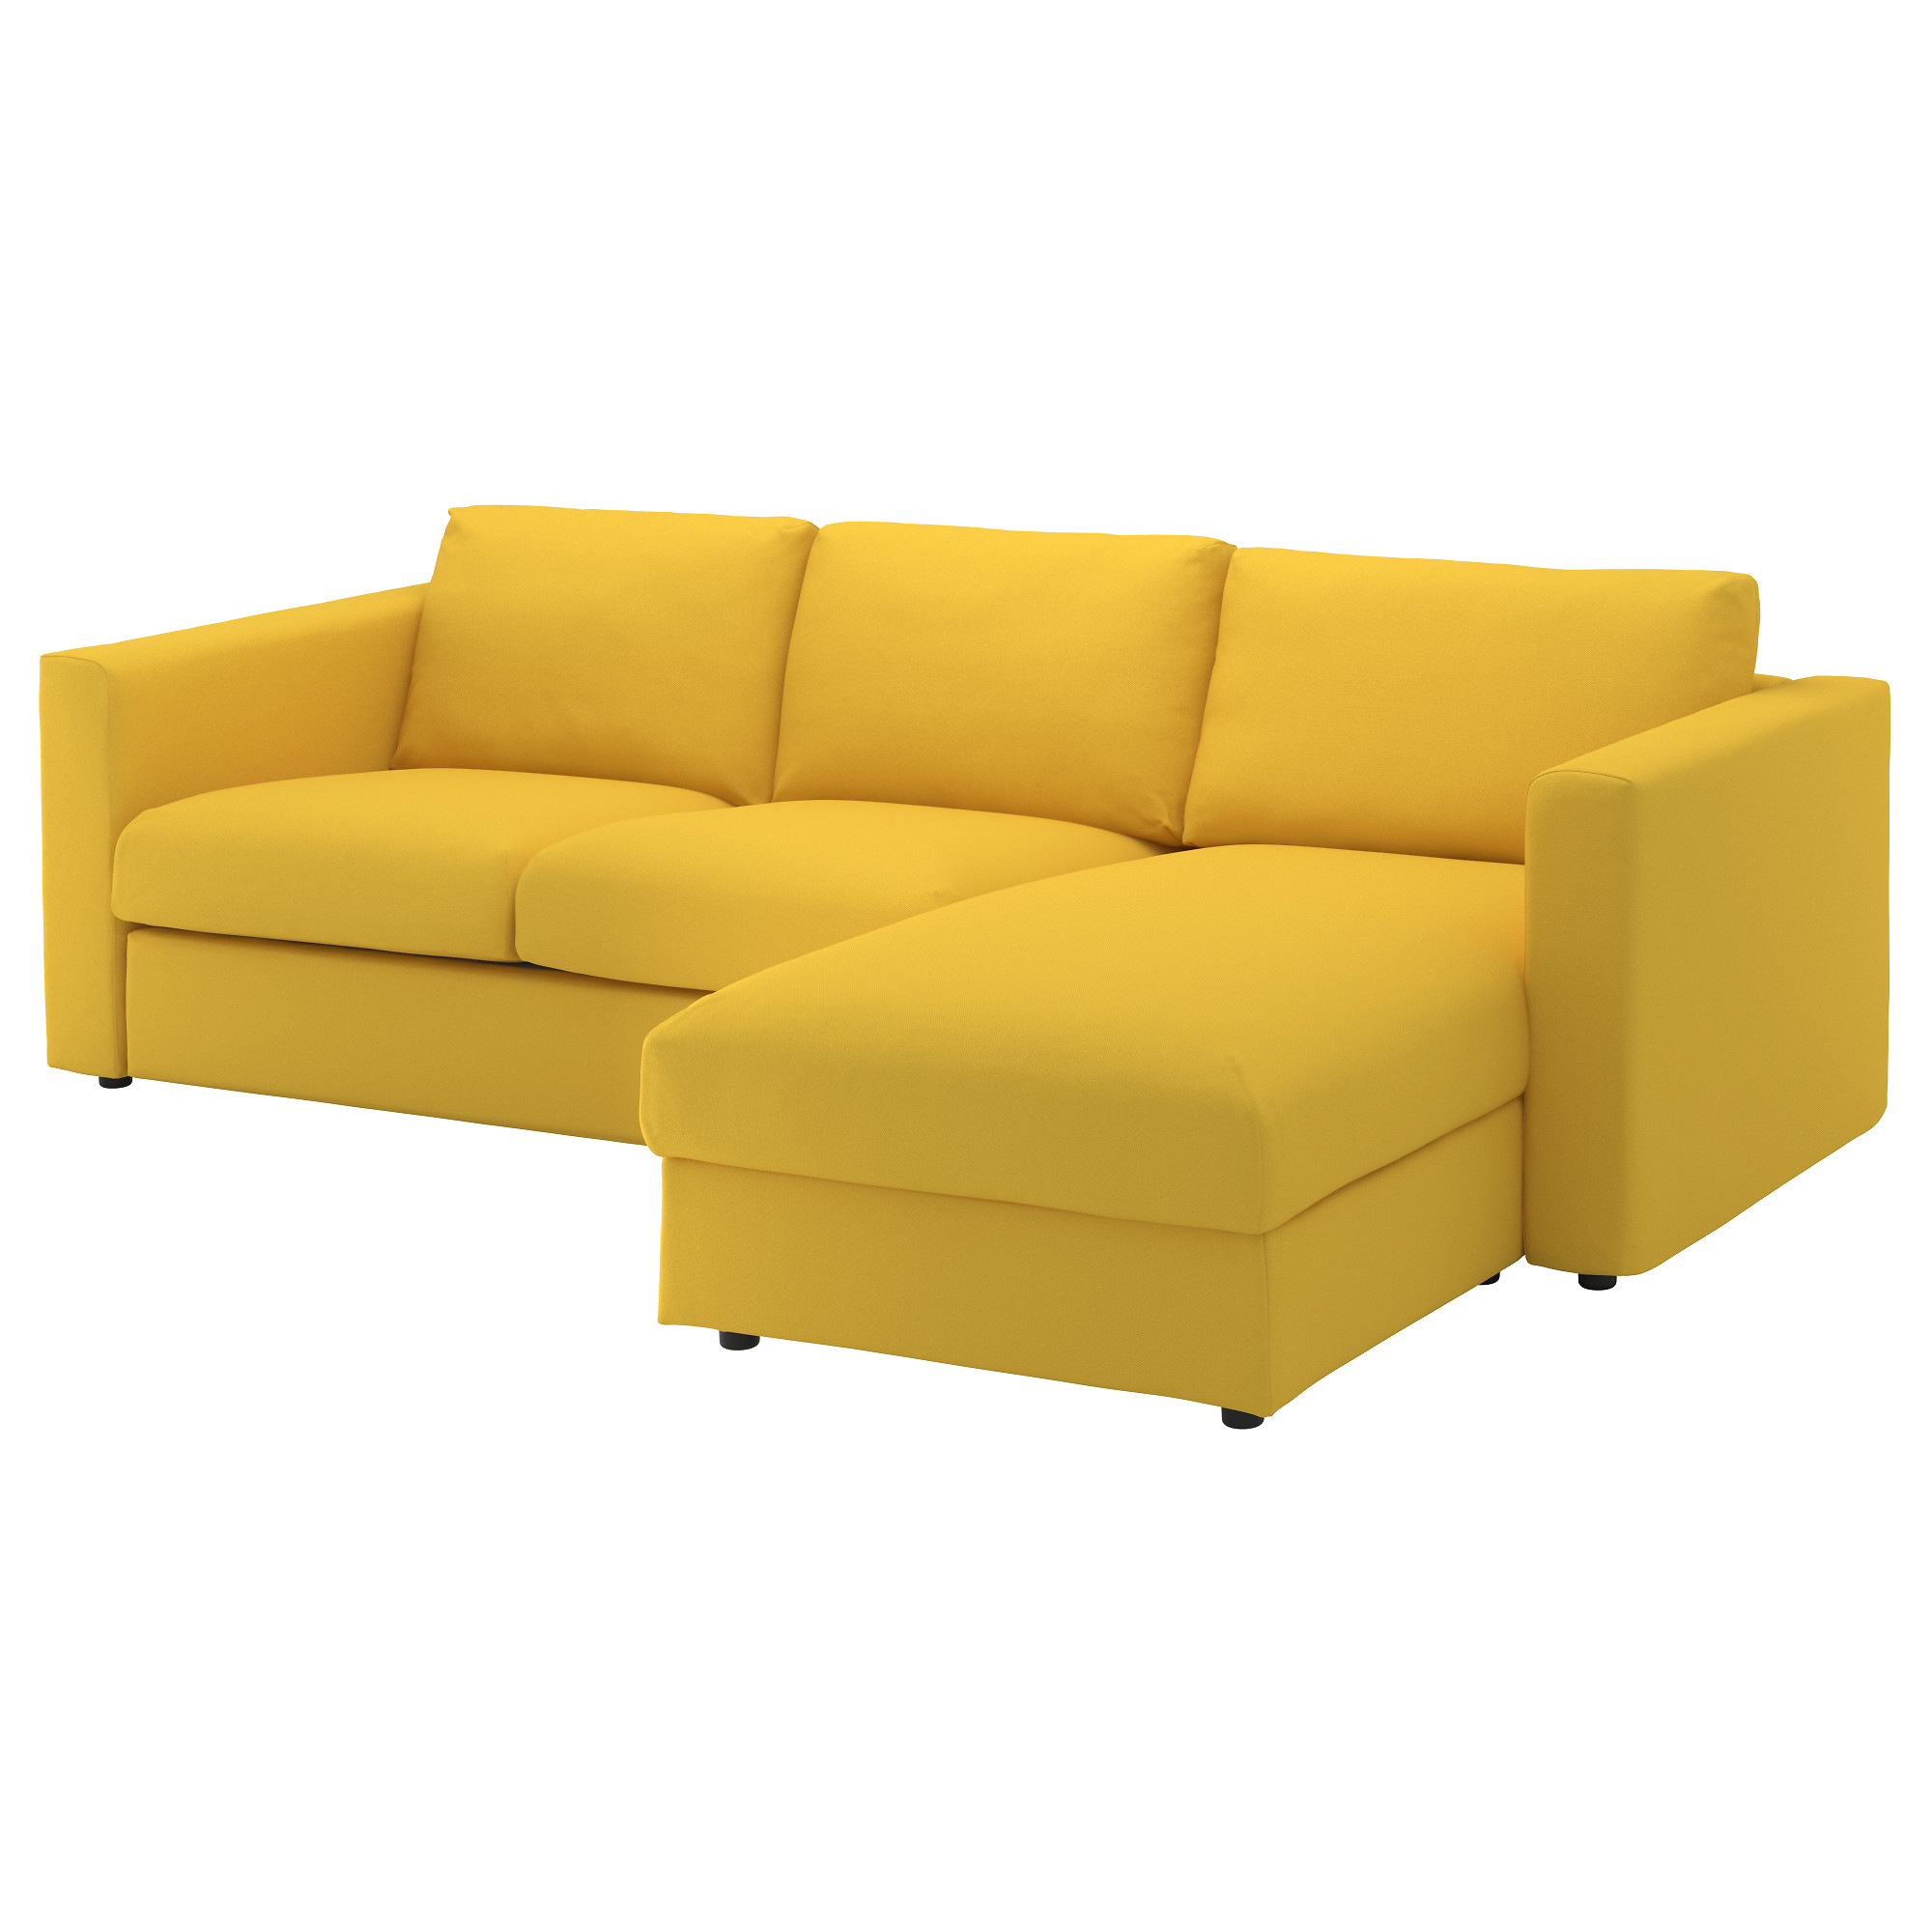 yellow sofa ikea viml 3-seat sofa the cover has been easy to keep clean since MRYLFIT